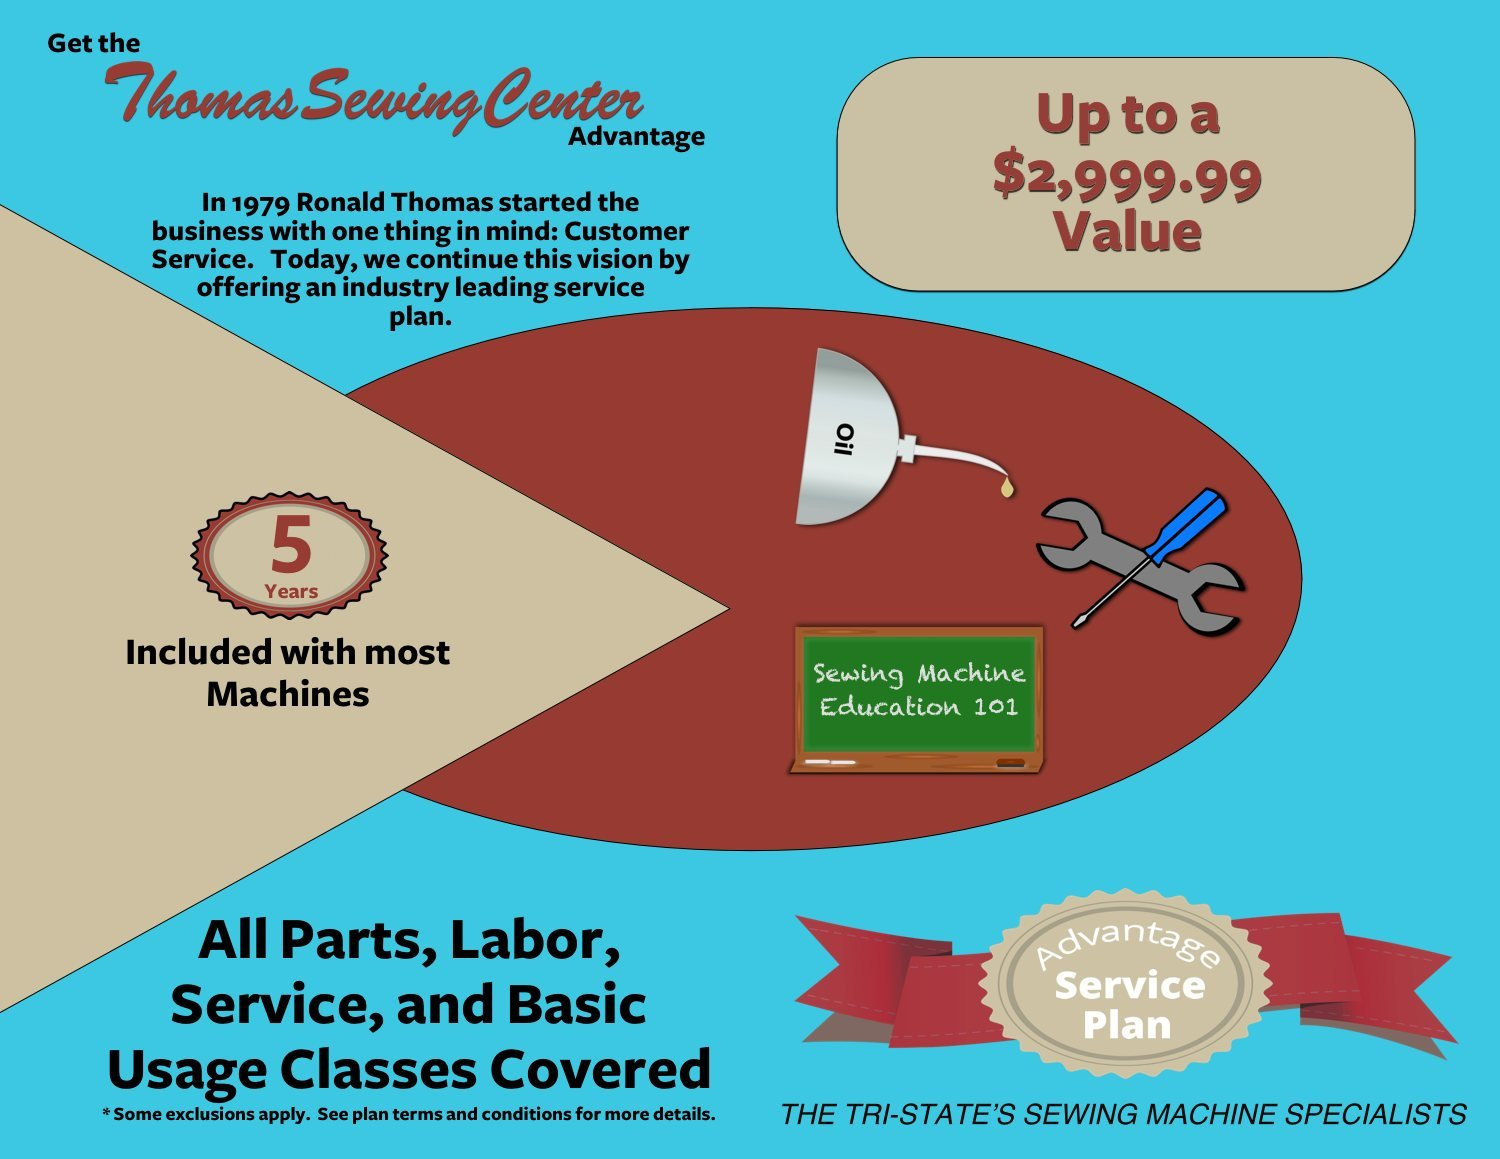 The Thomas Sewing Center Advantage Service Plan